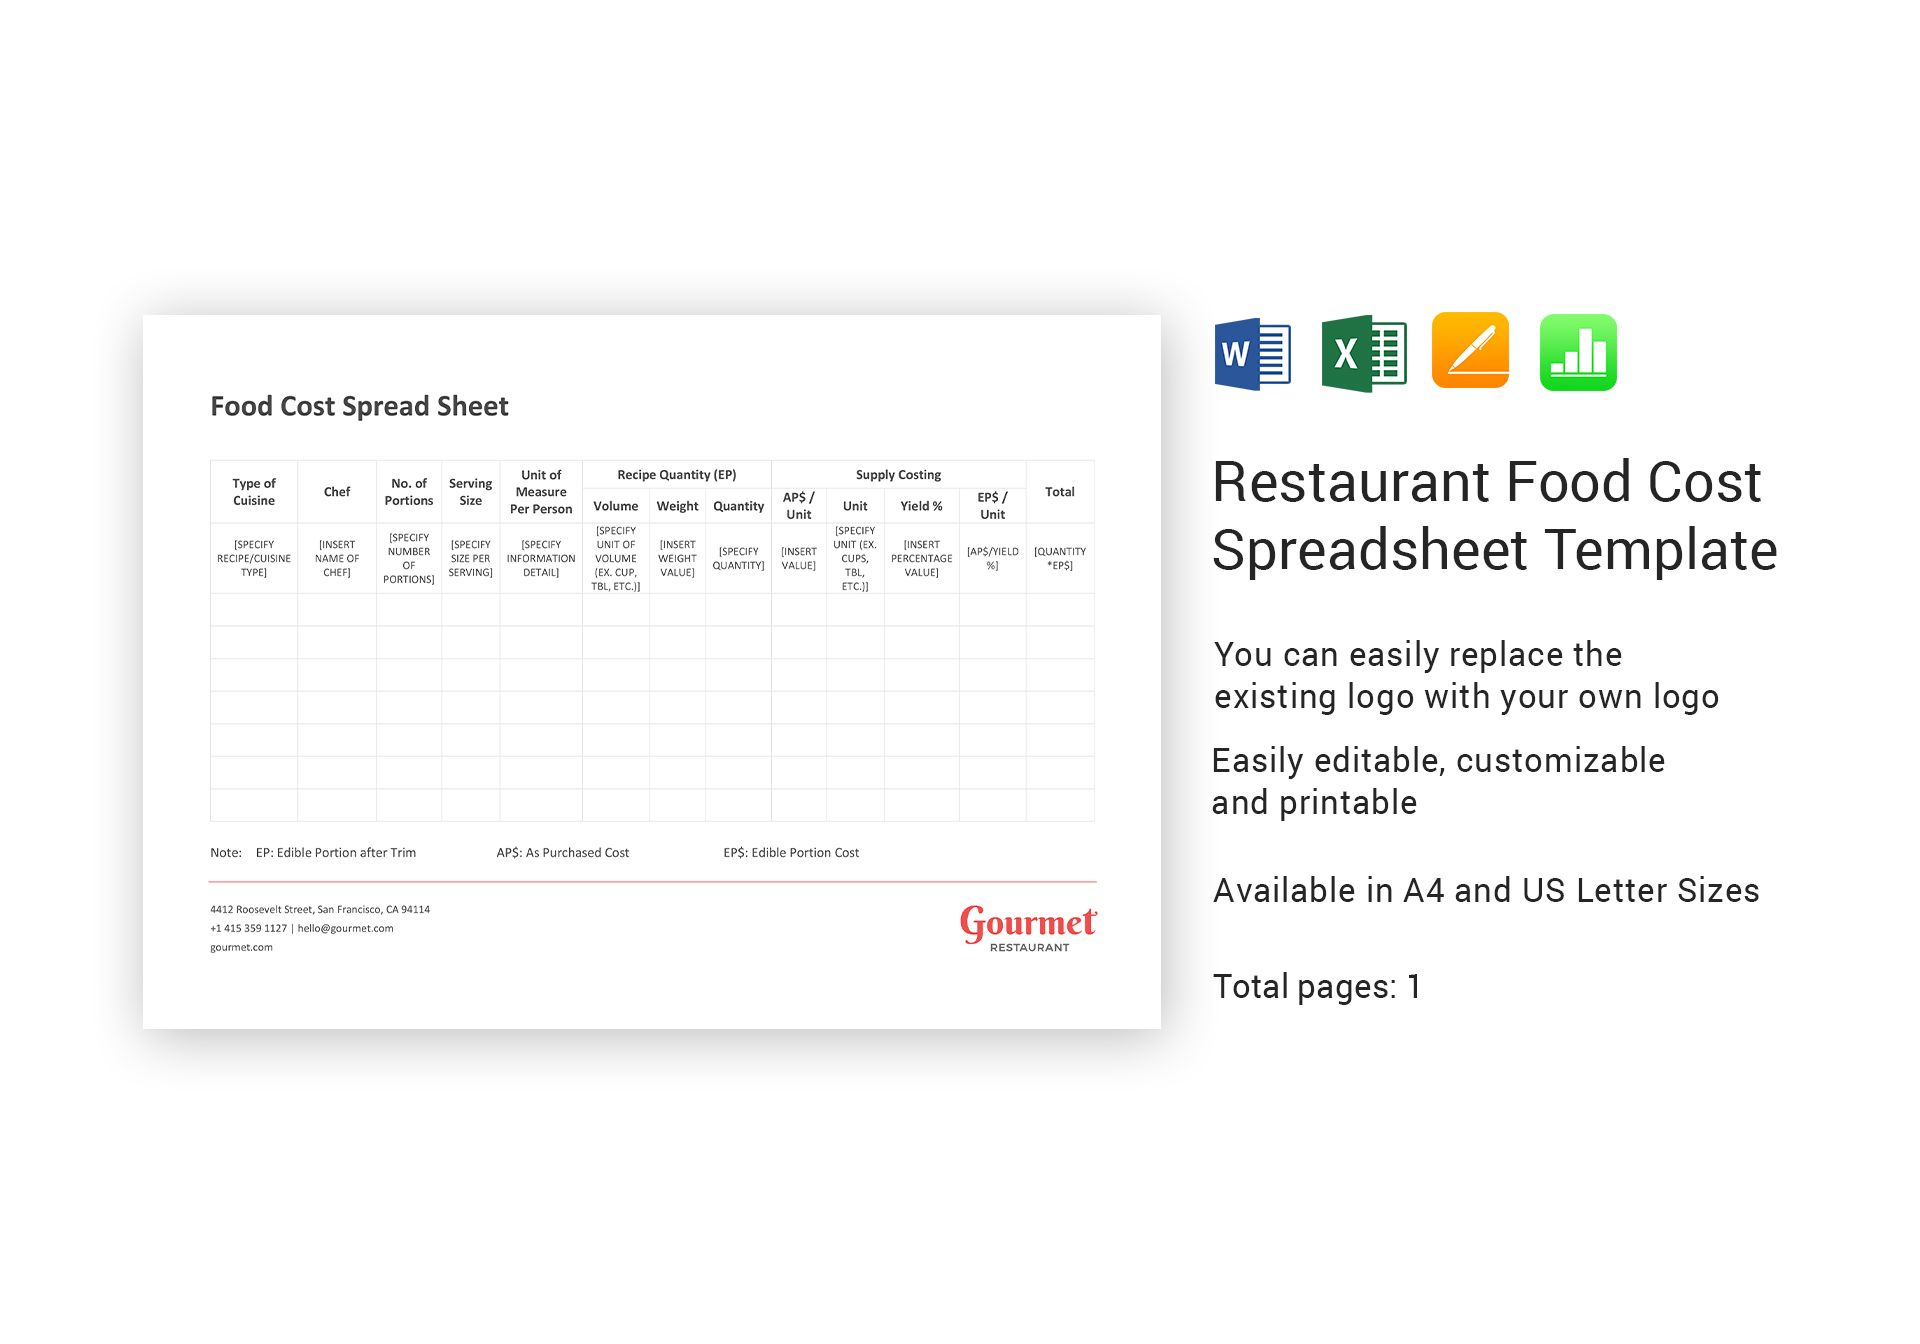 restaurant food cost spreadsheet template in word excel apple